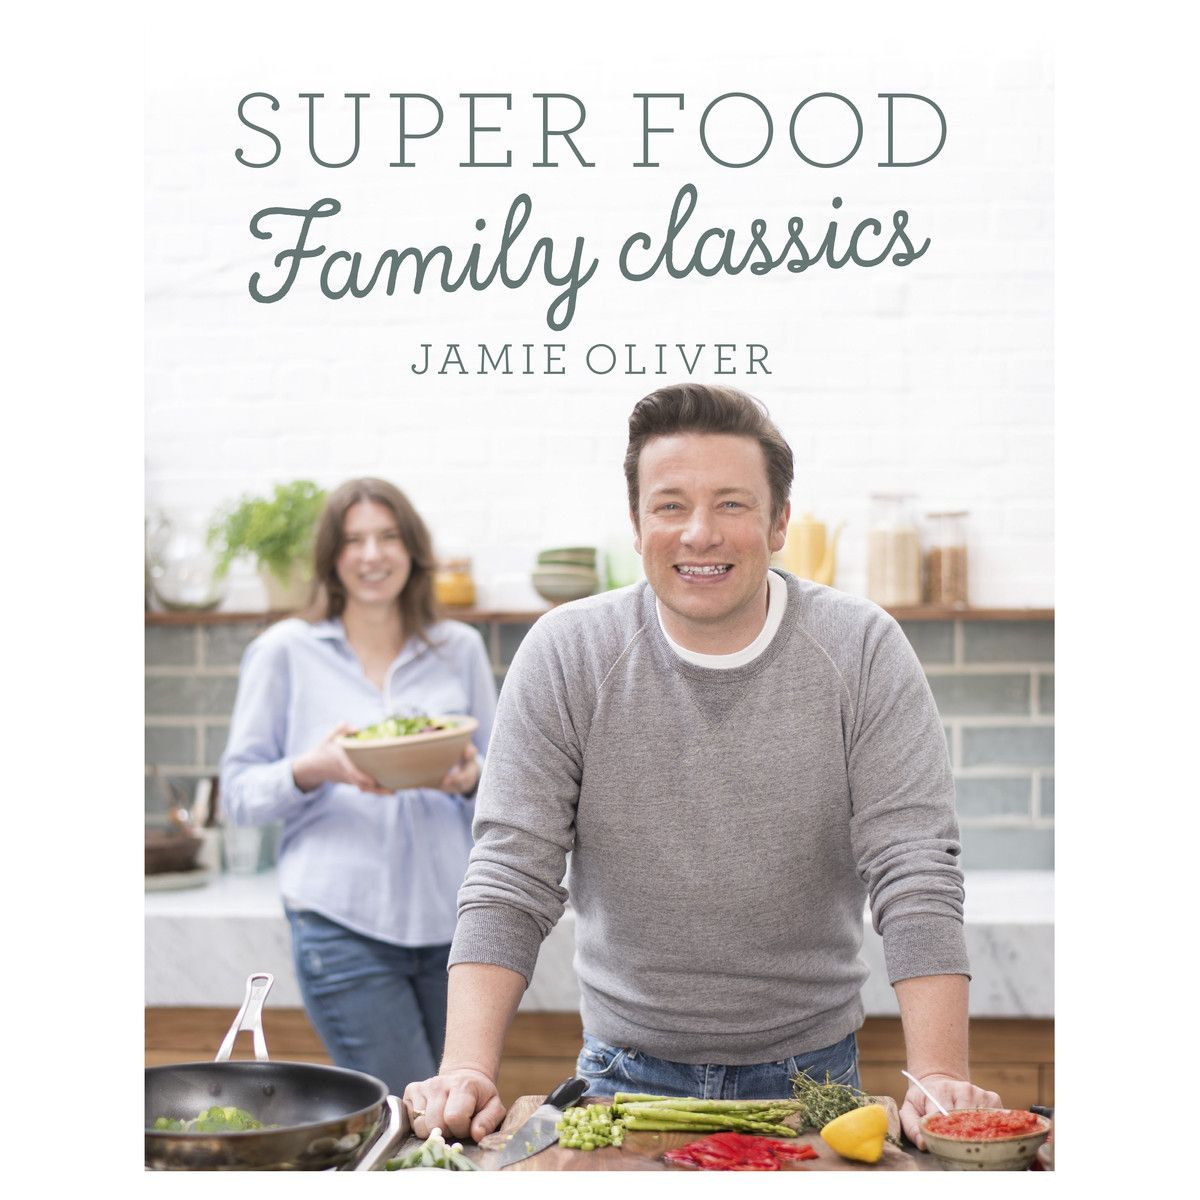 #Win @jamieoliver&#39;s Super Food Family Classics cookbook. RT &amp; follow to enter. Winner 02/06 at 4pm. #competition <br>http://pic.twitter.com/GqpeYWMUu6